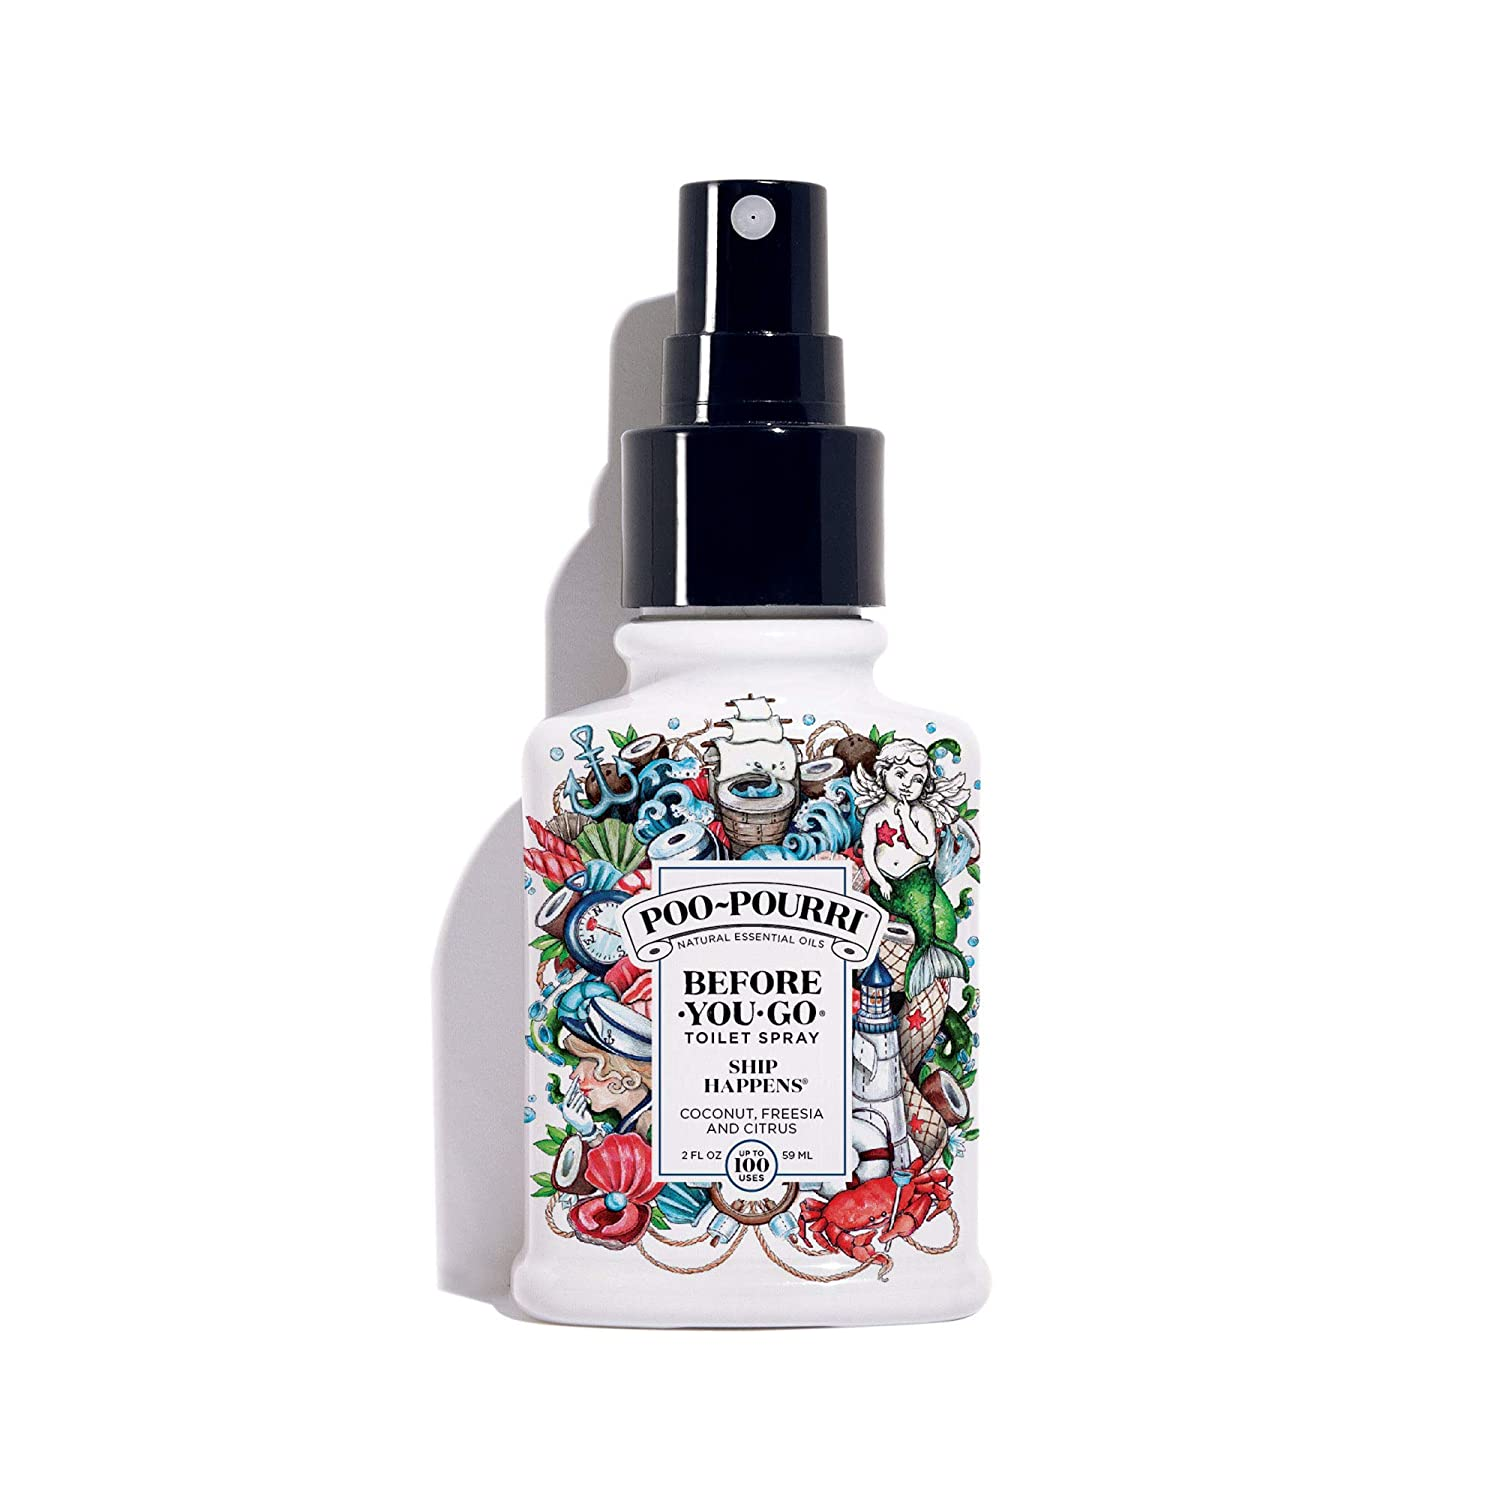 Poo-Pourri Before-You-Go Toilet Spray, Ship Happens Scent, 2 oz